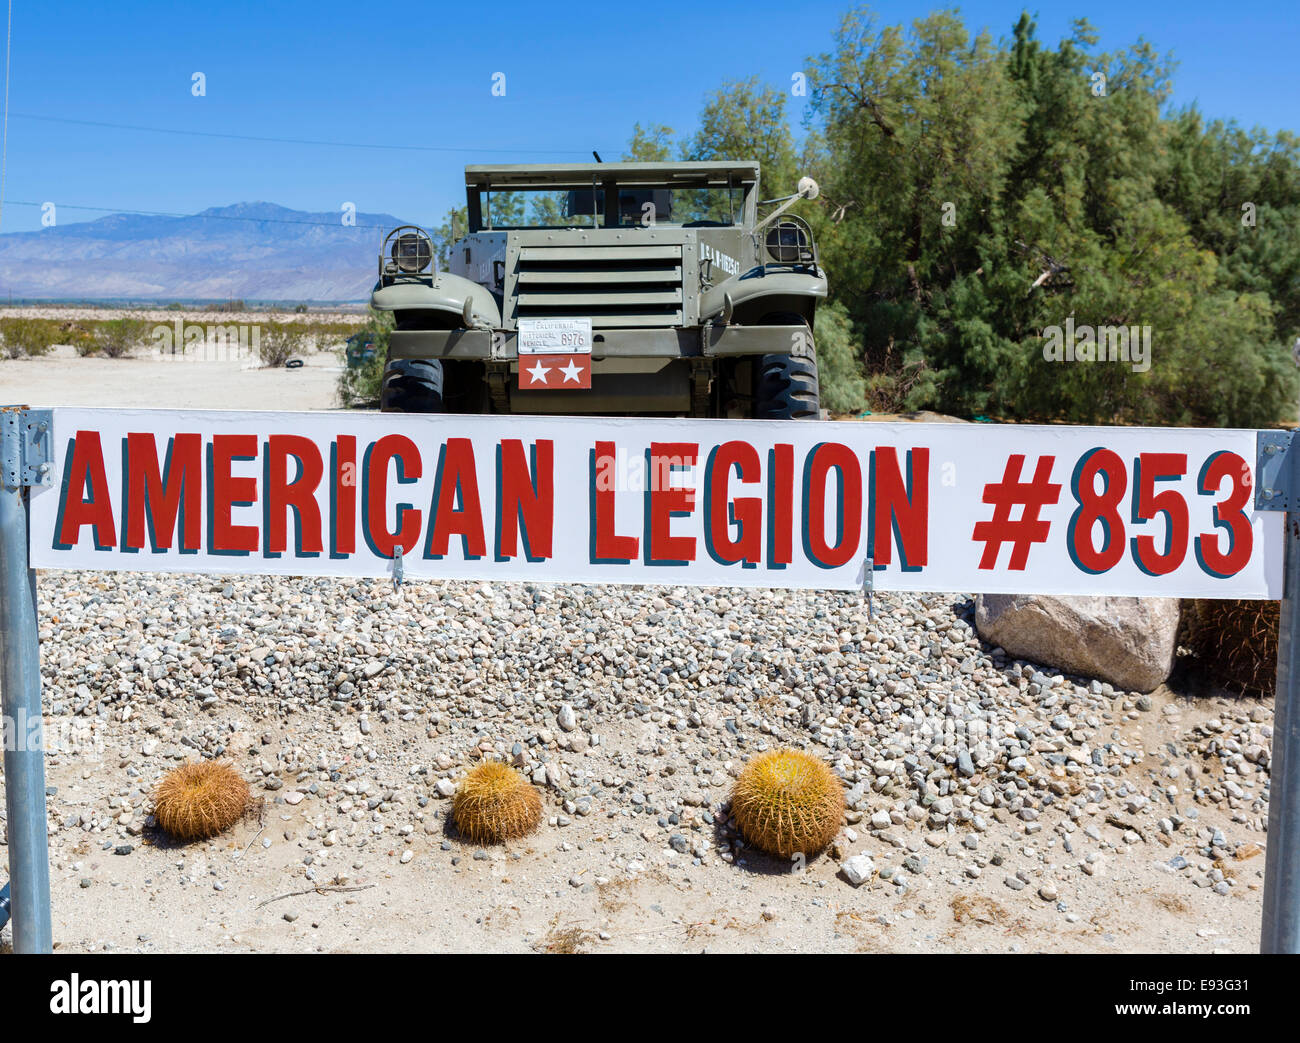 American Legion Post 853  in Borrego Springs, Anza-Borrego Desert State Park, Southern California, USA - Stock Image